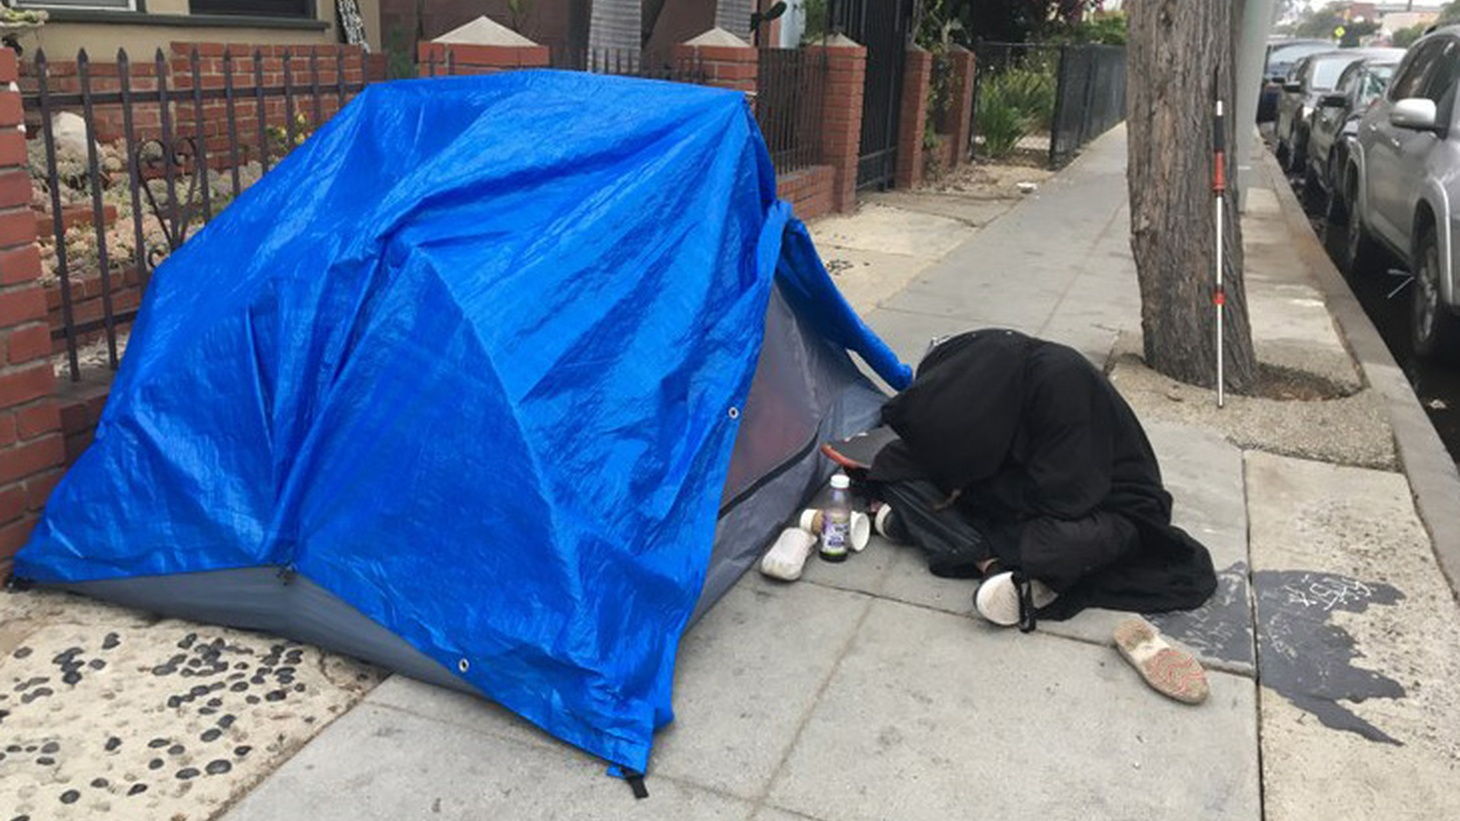 A modern dome tent covered with a tarp in Venice.